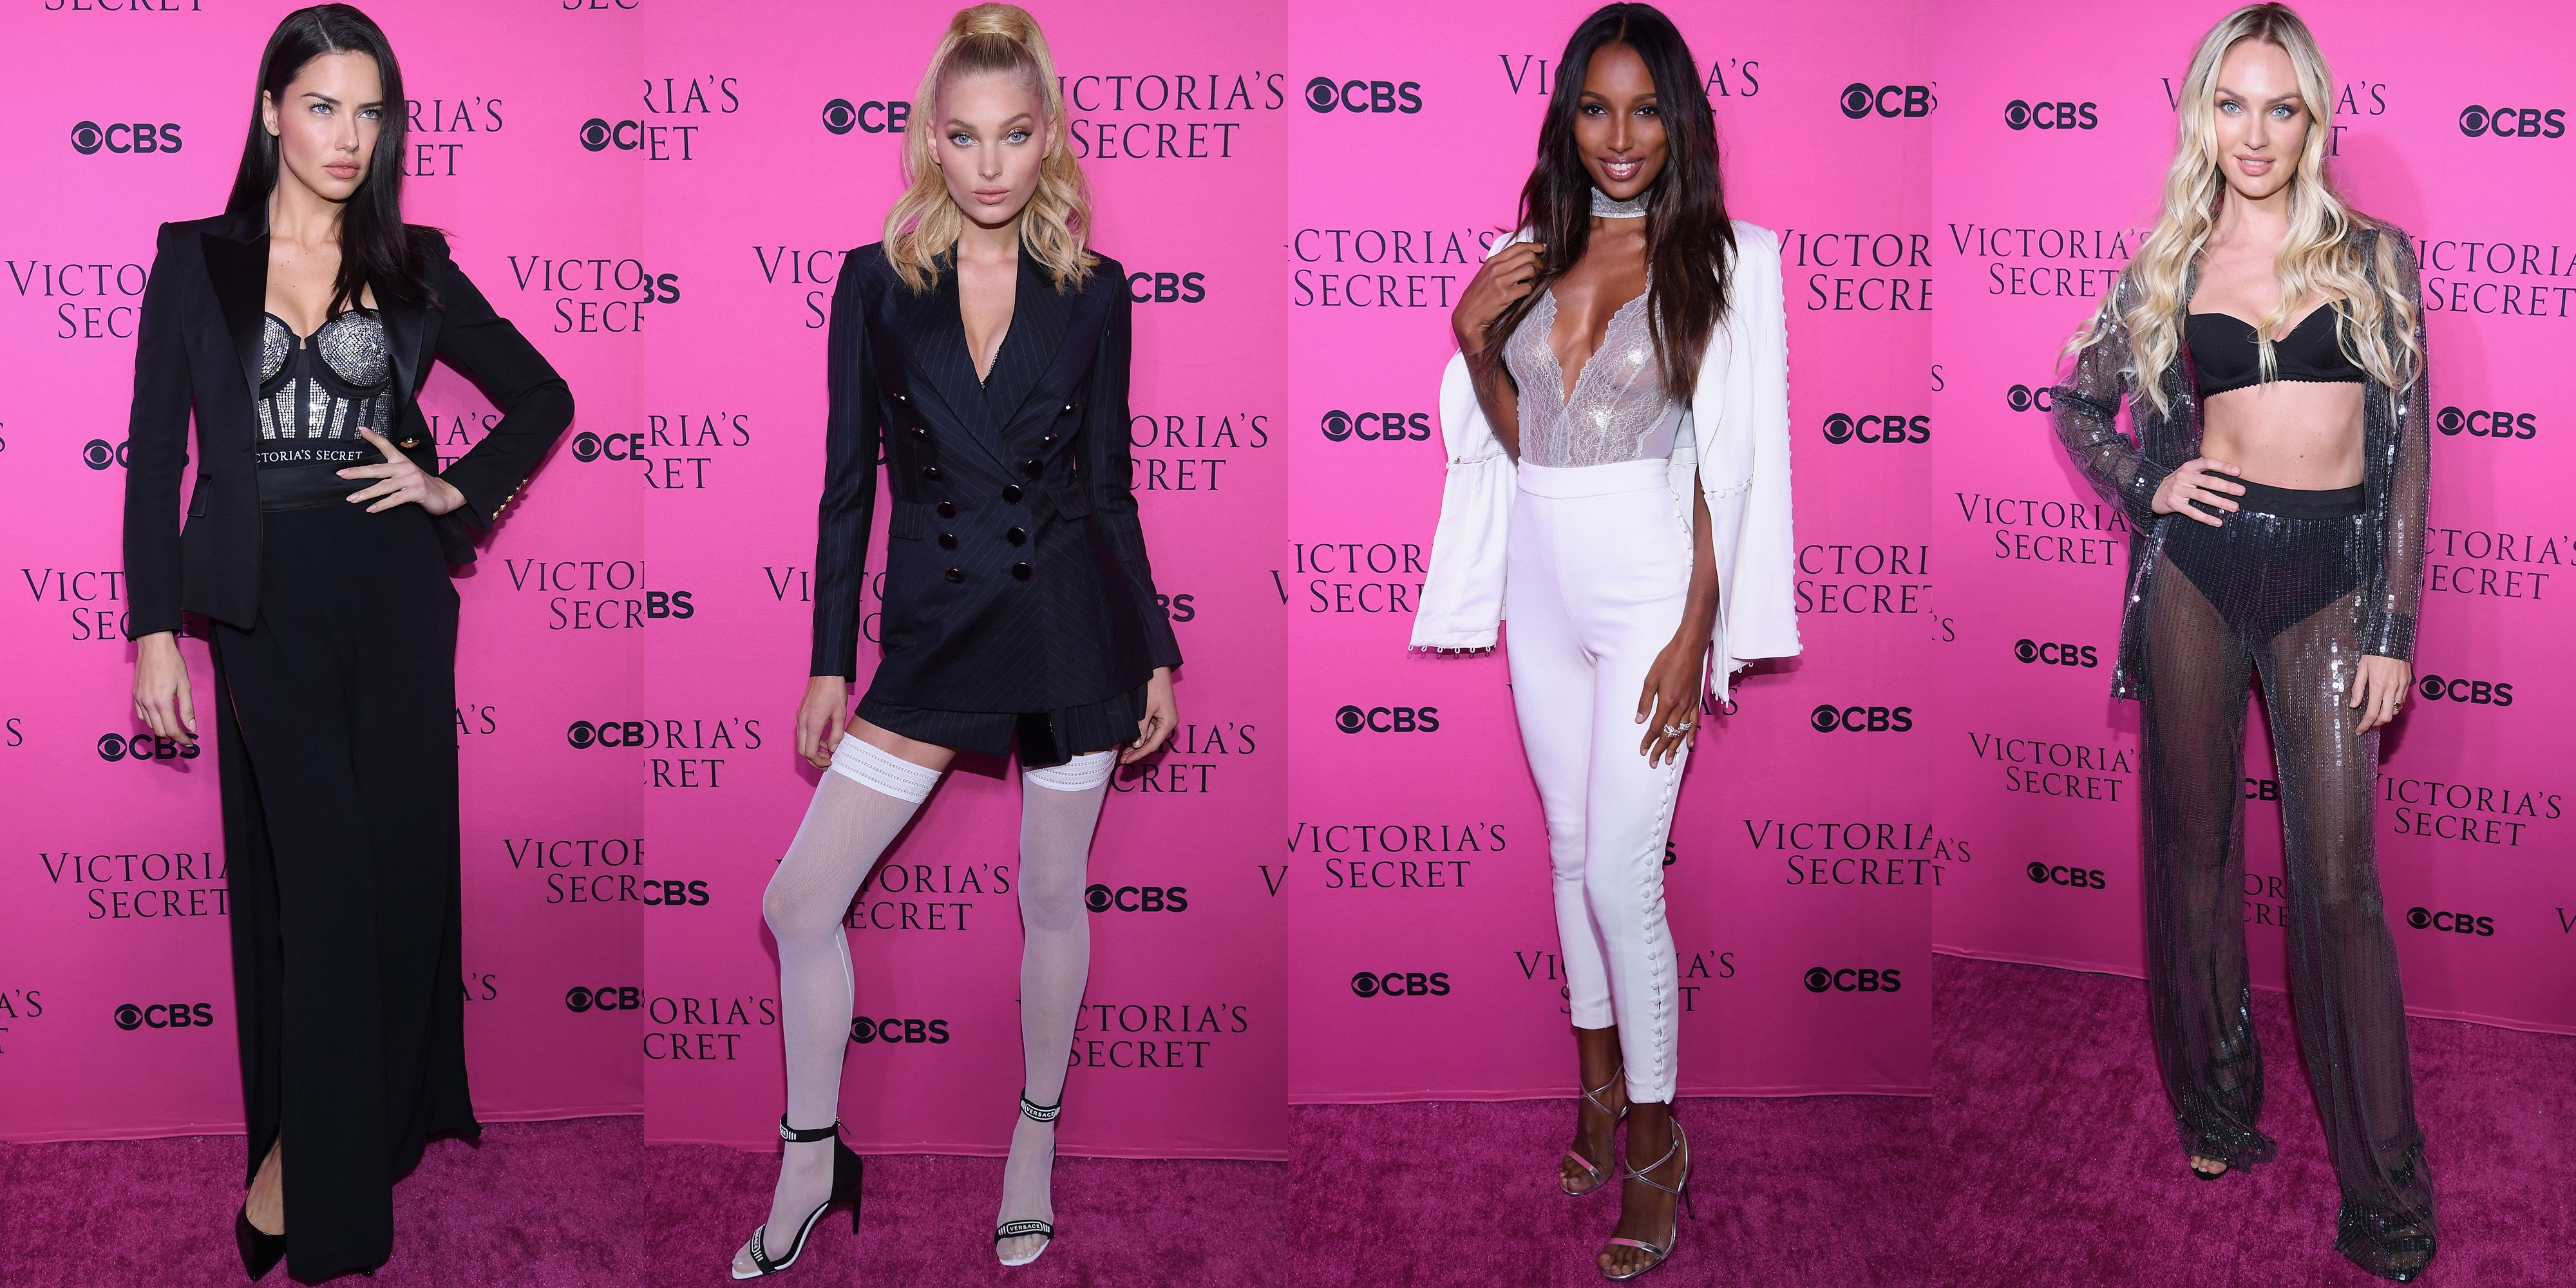 71a3829096e What the Victoria Secret Angels Wore to the Fashion Show Viewing Party